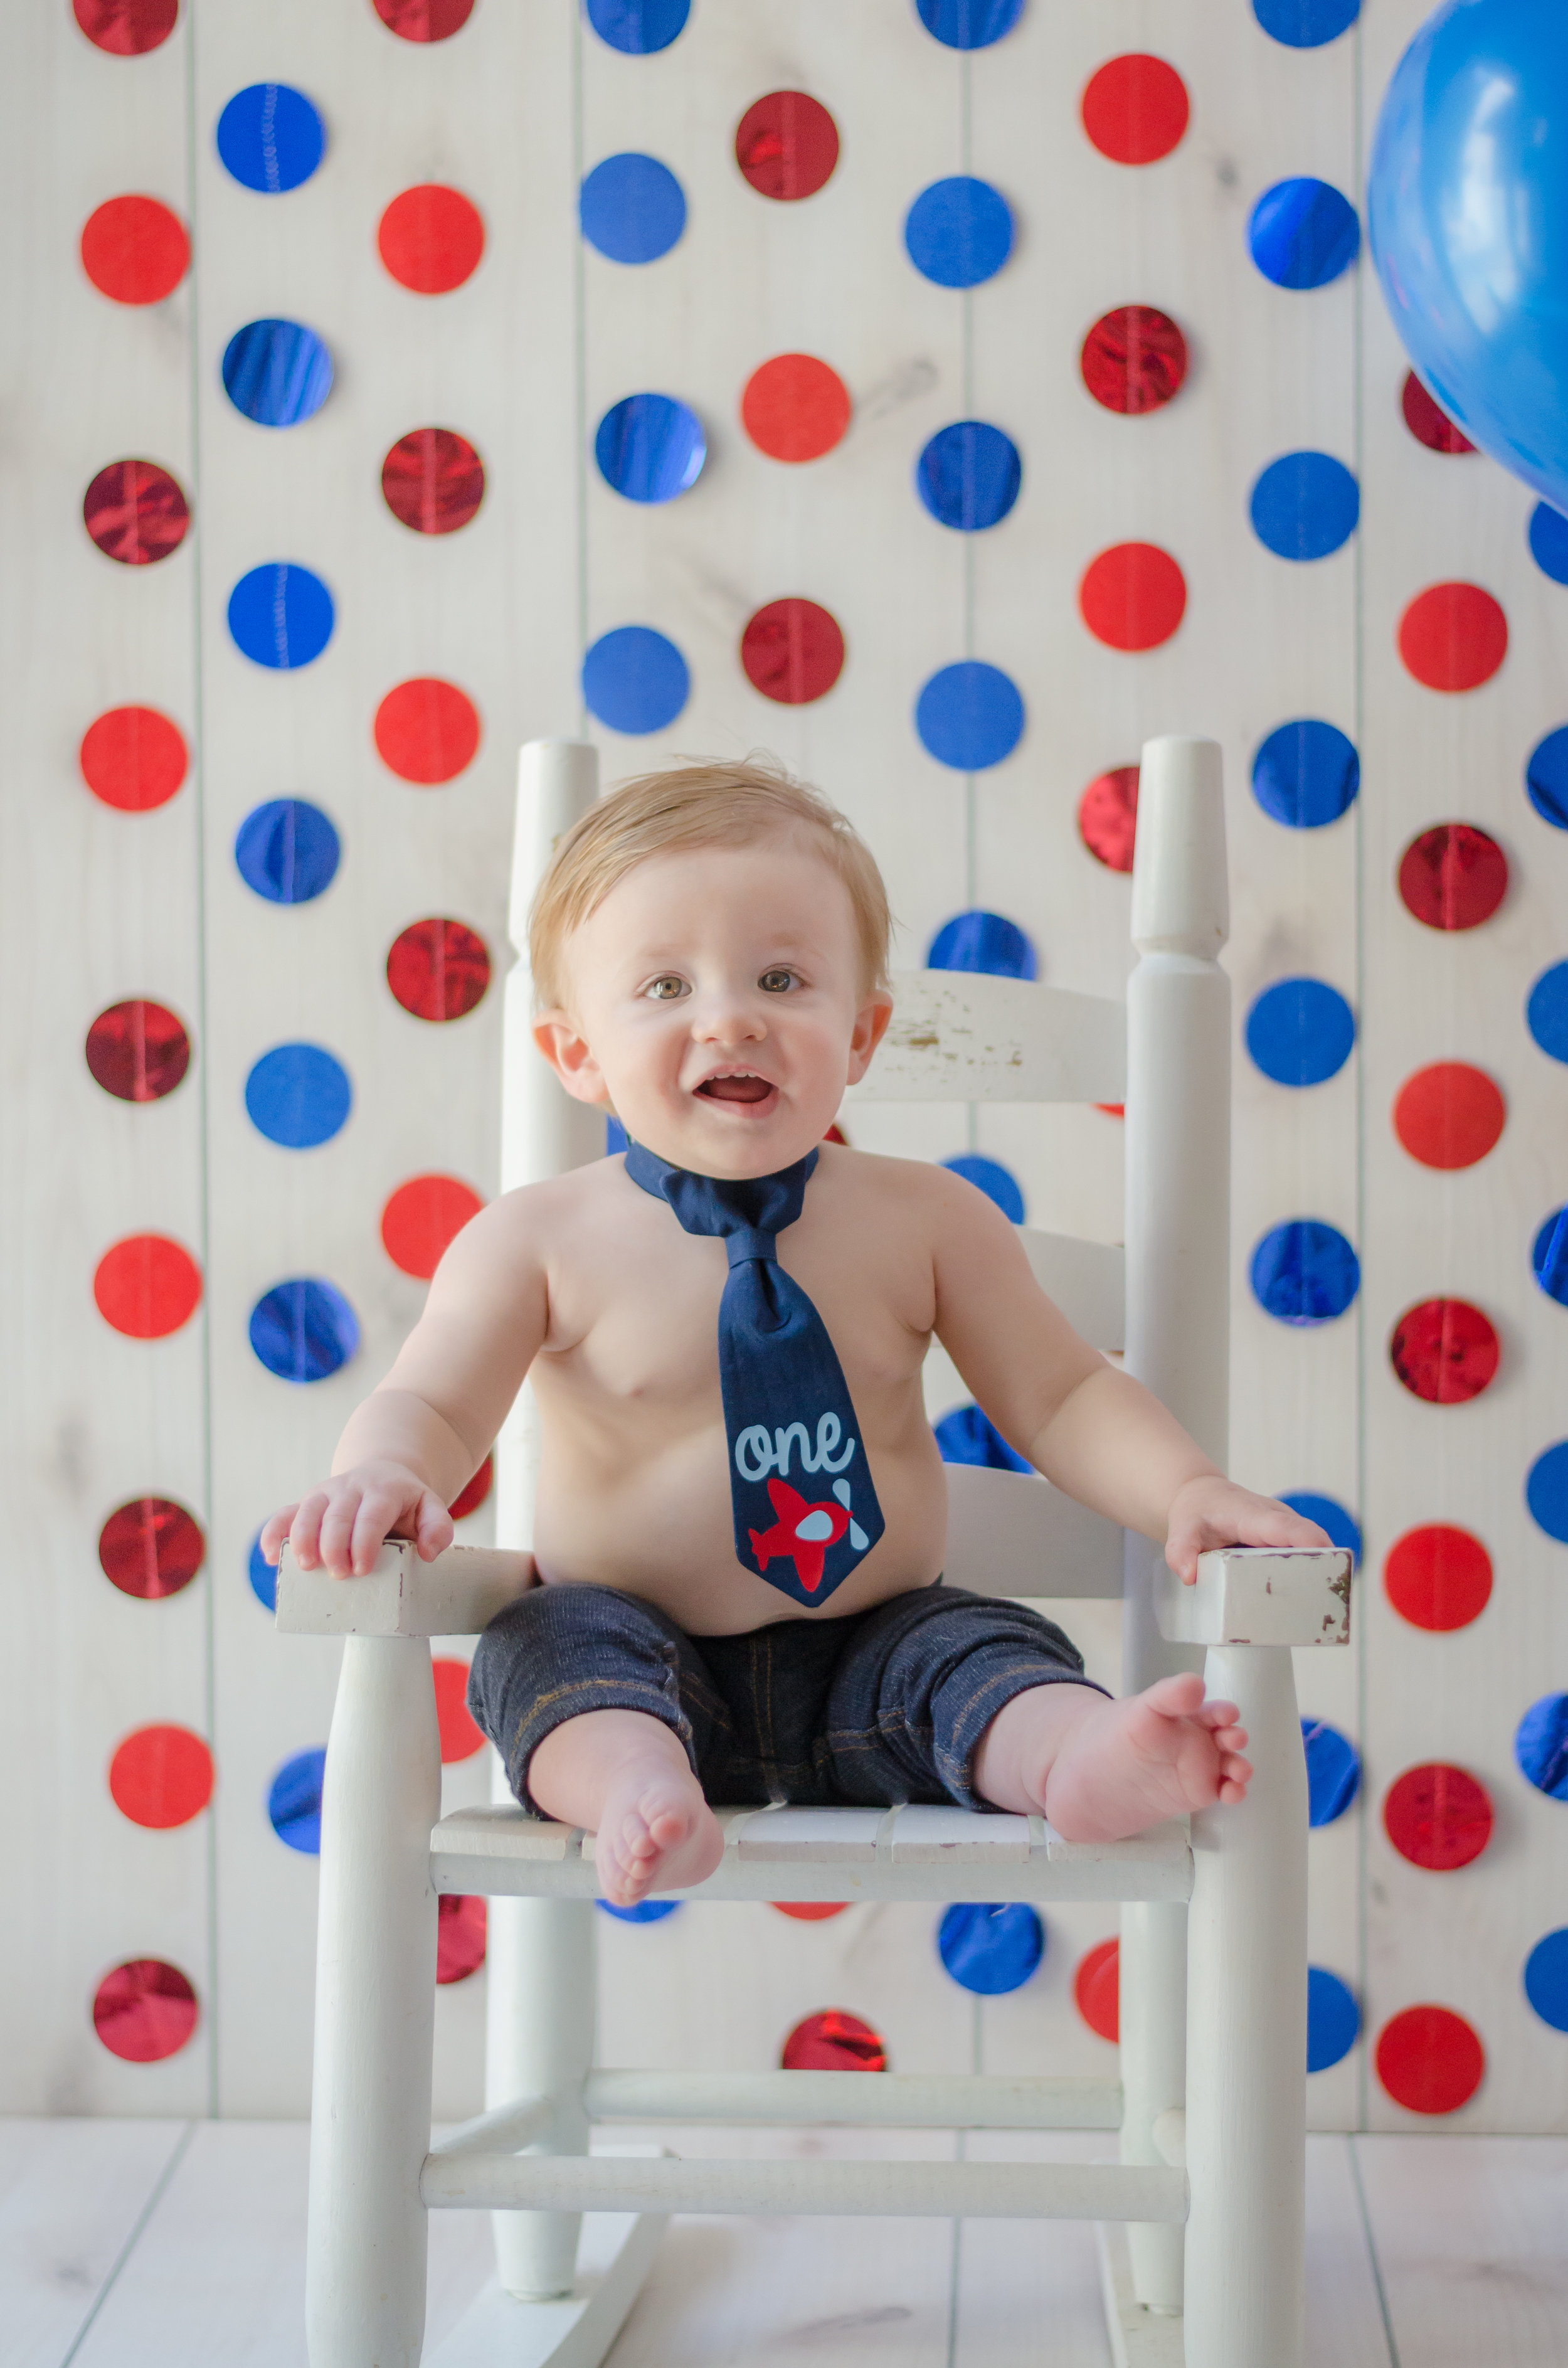 Adorable baby boy wearing a tie sitting in a rocking chair for his first birthday with balloons